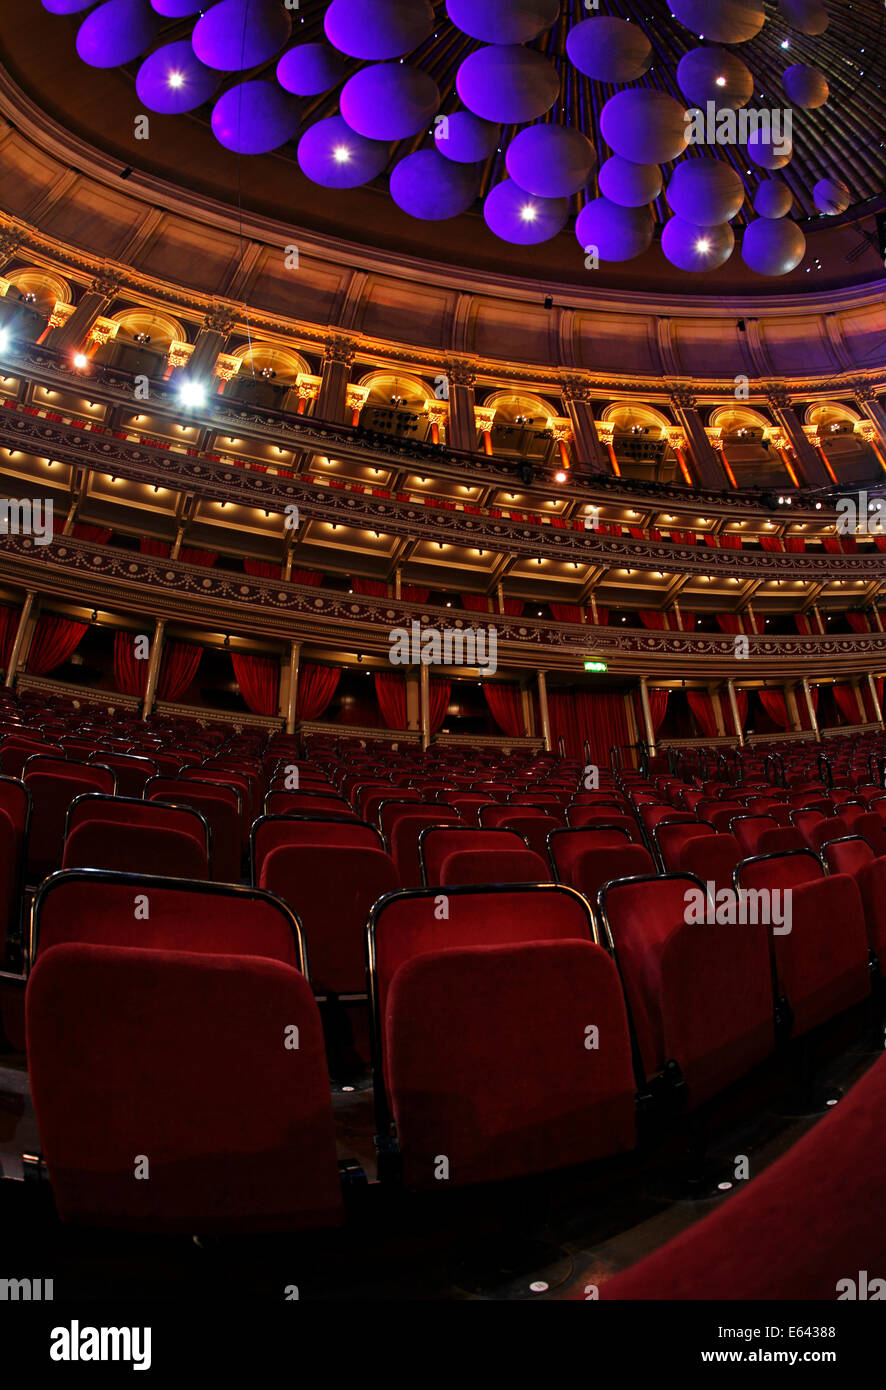 Seating and Acoustic sound panels in the roof of the Royal Albert Hall, London, UK - Stock Image